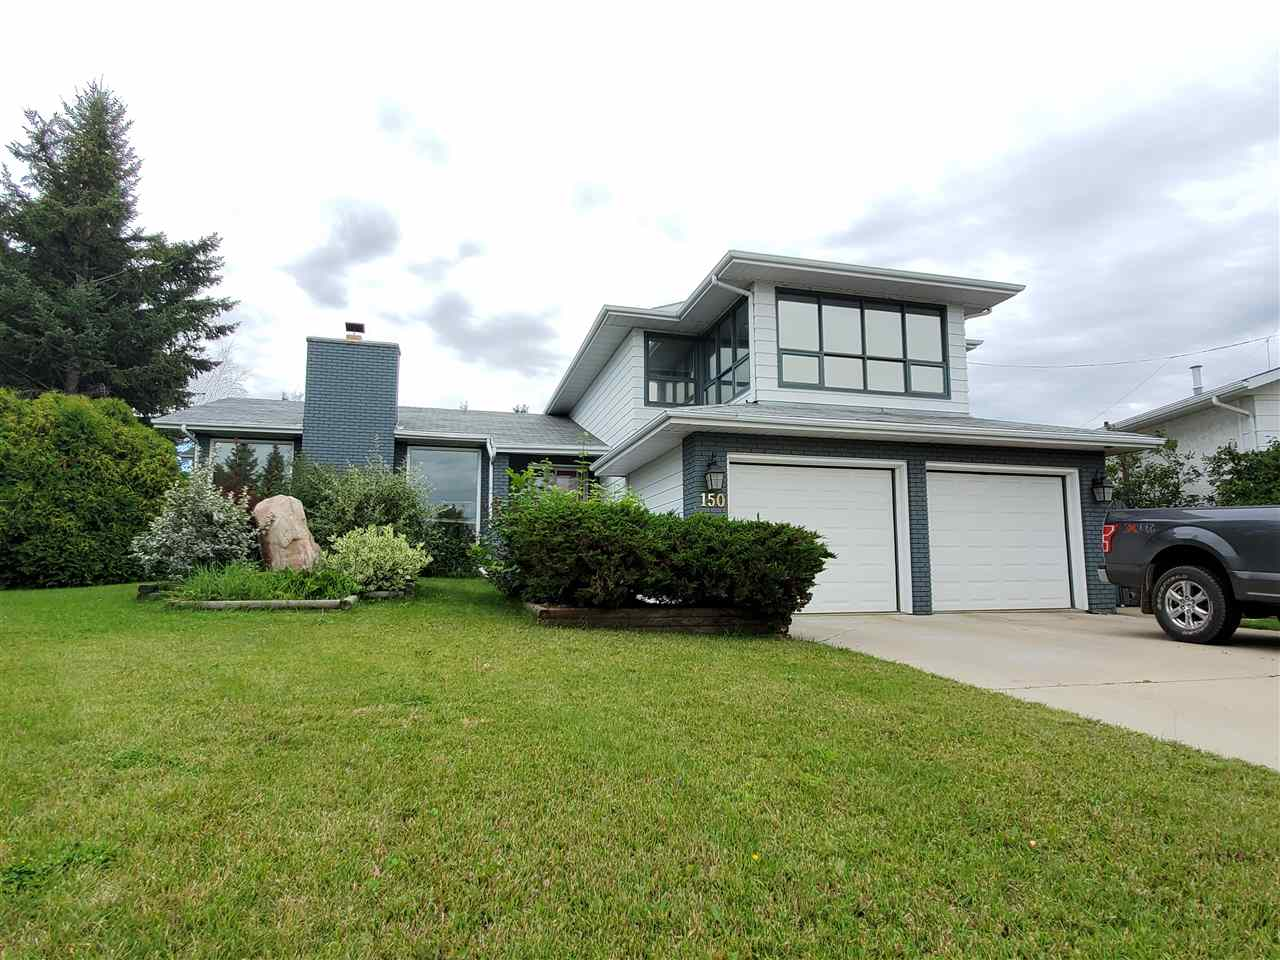 MLS® listing #E4170790 for sale located at 150 Willow Drive